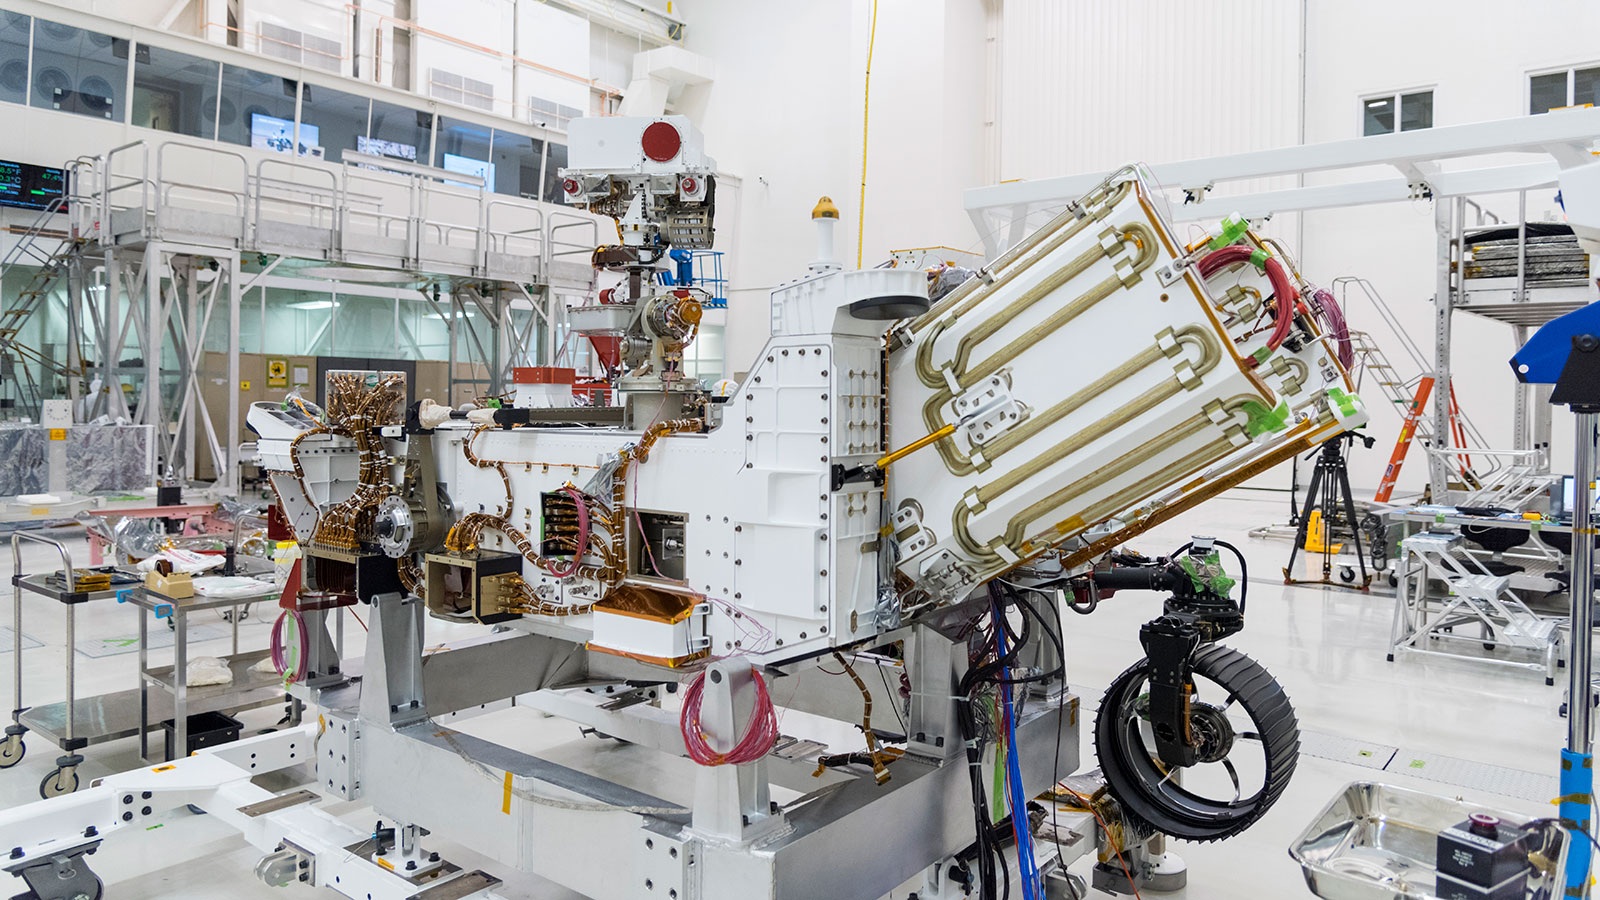 slide 5 - An image of the Mars 2020 rover in the JPL's Spacecraft Assembly Facility's High Bay 1